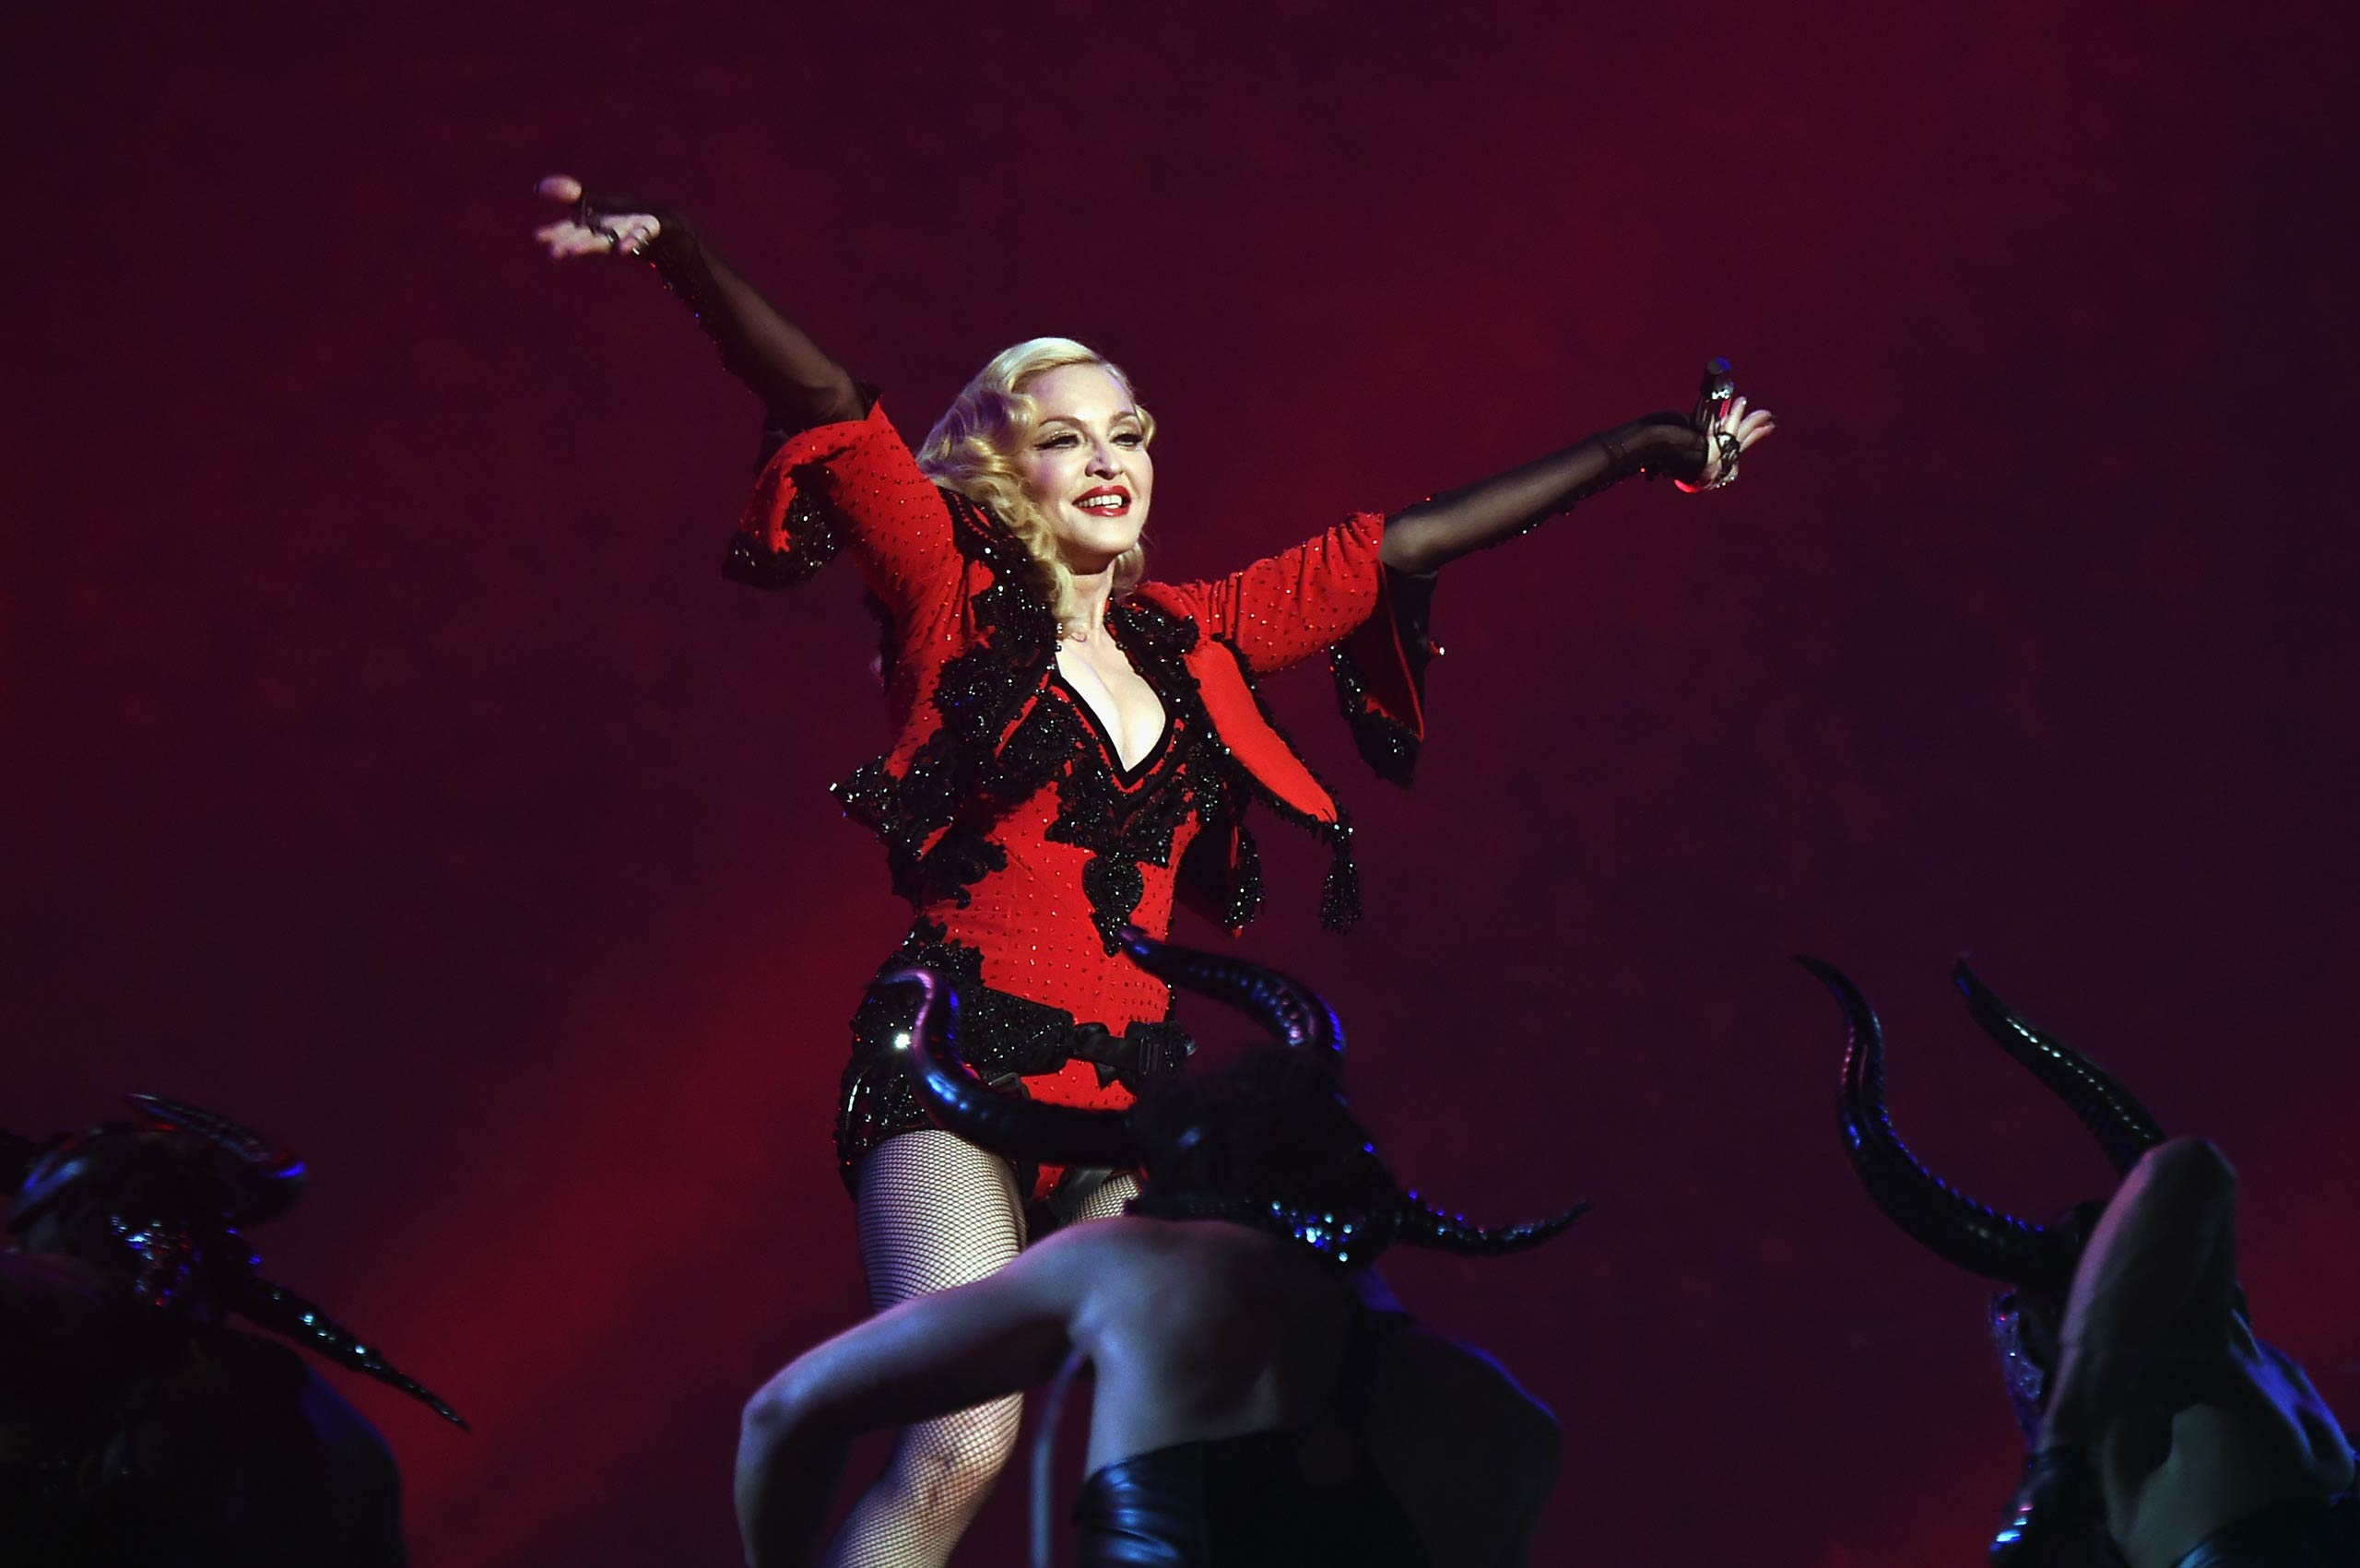 Madonna performs onstage during The 57th Annual GRAMMY Awards at the STAPLES Center on February 8, 2015 in Los Angeles, Calif.